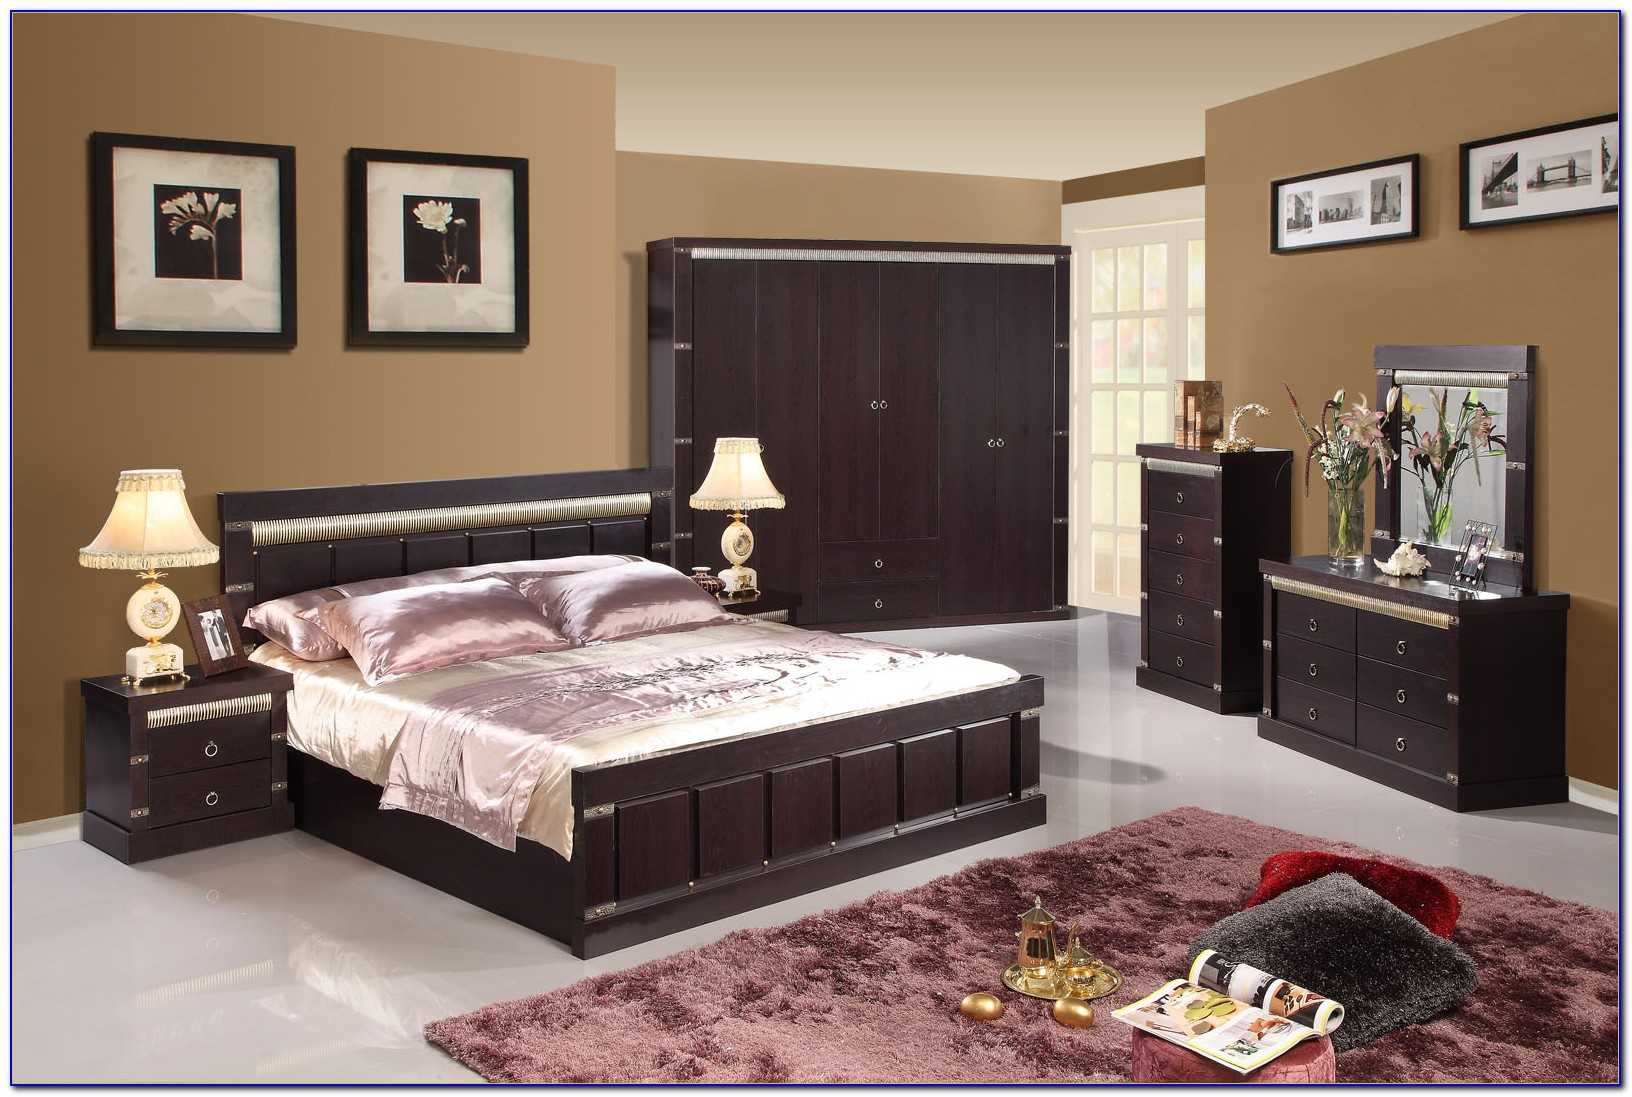 Black High Gloss Lacquer Bedroom Furniture